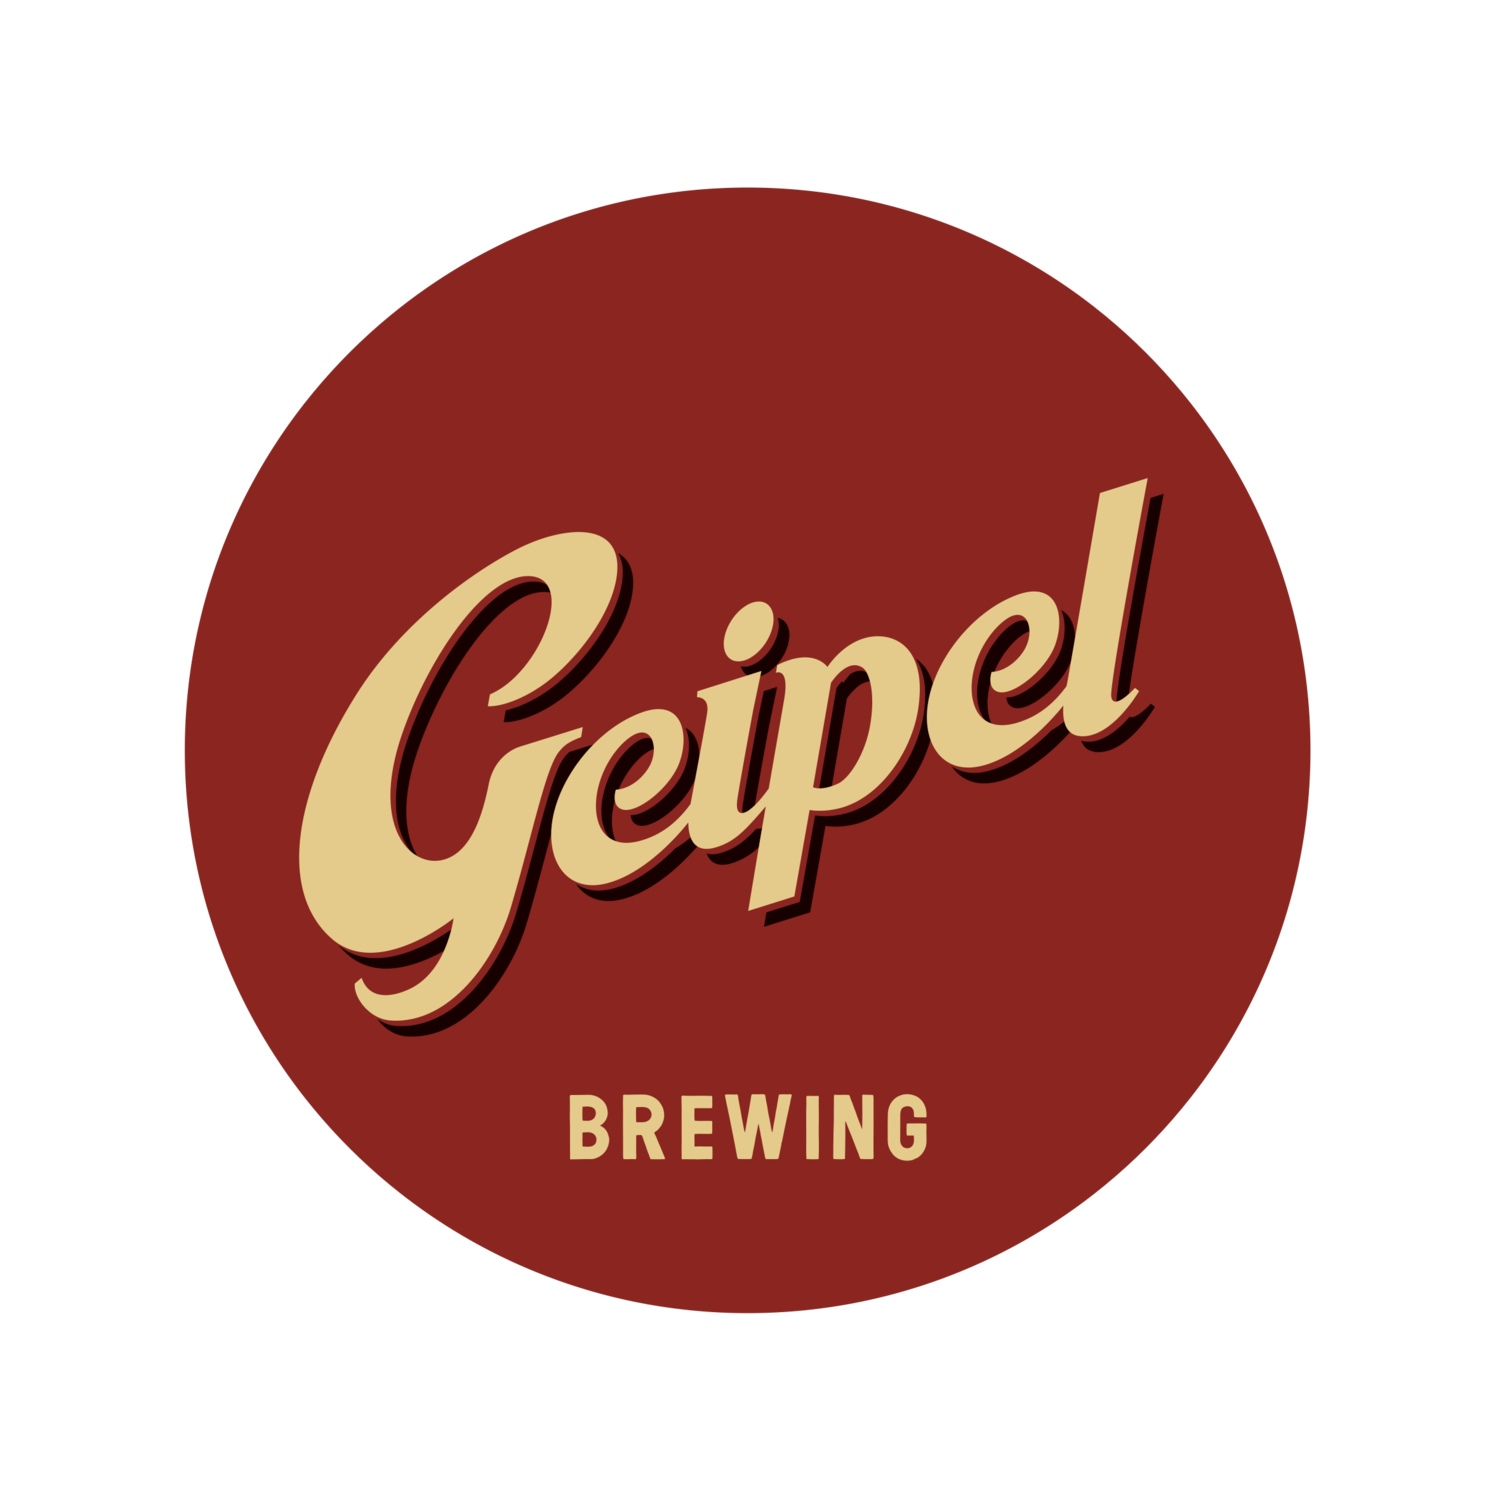 Geipel Brewing